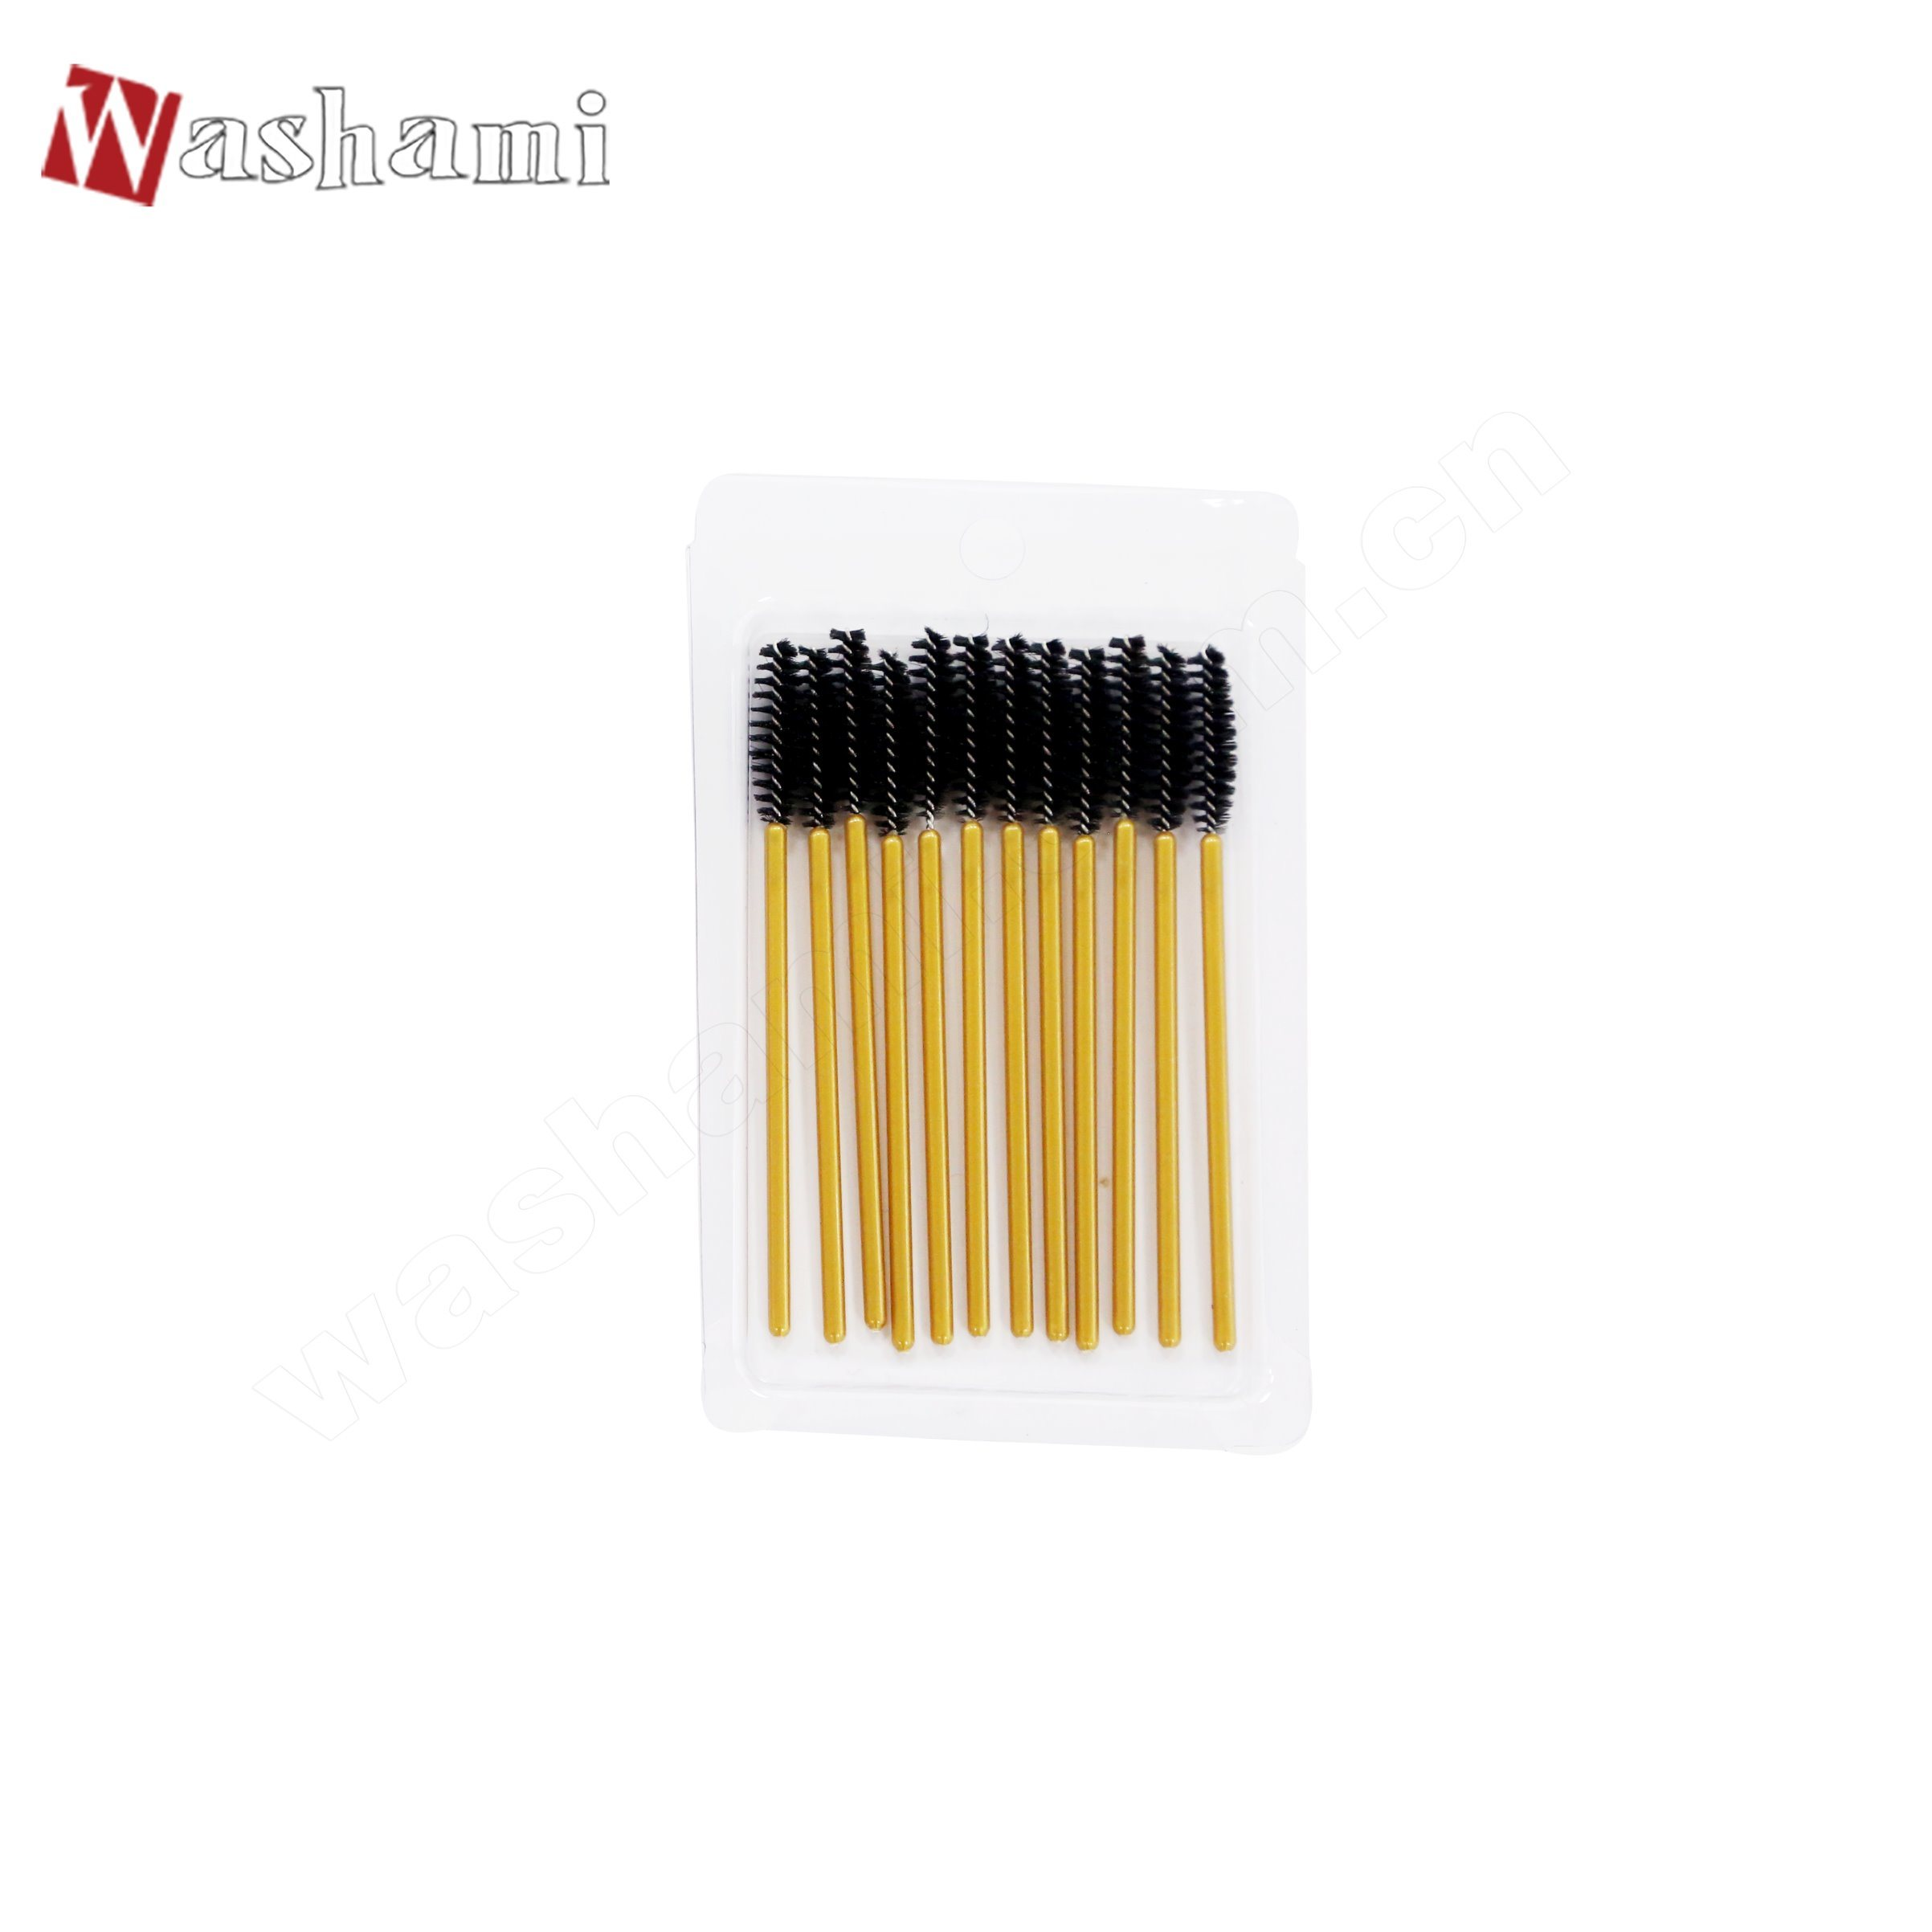 Washami 12PCS Mascara Brush Custom Makeup Brush Set